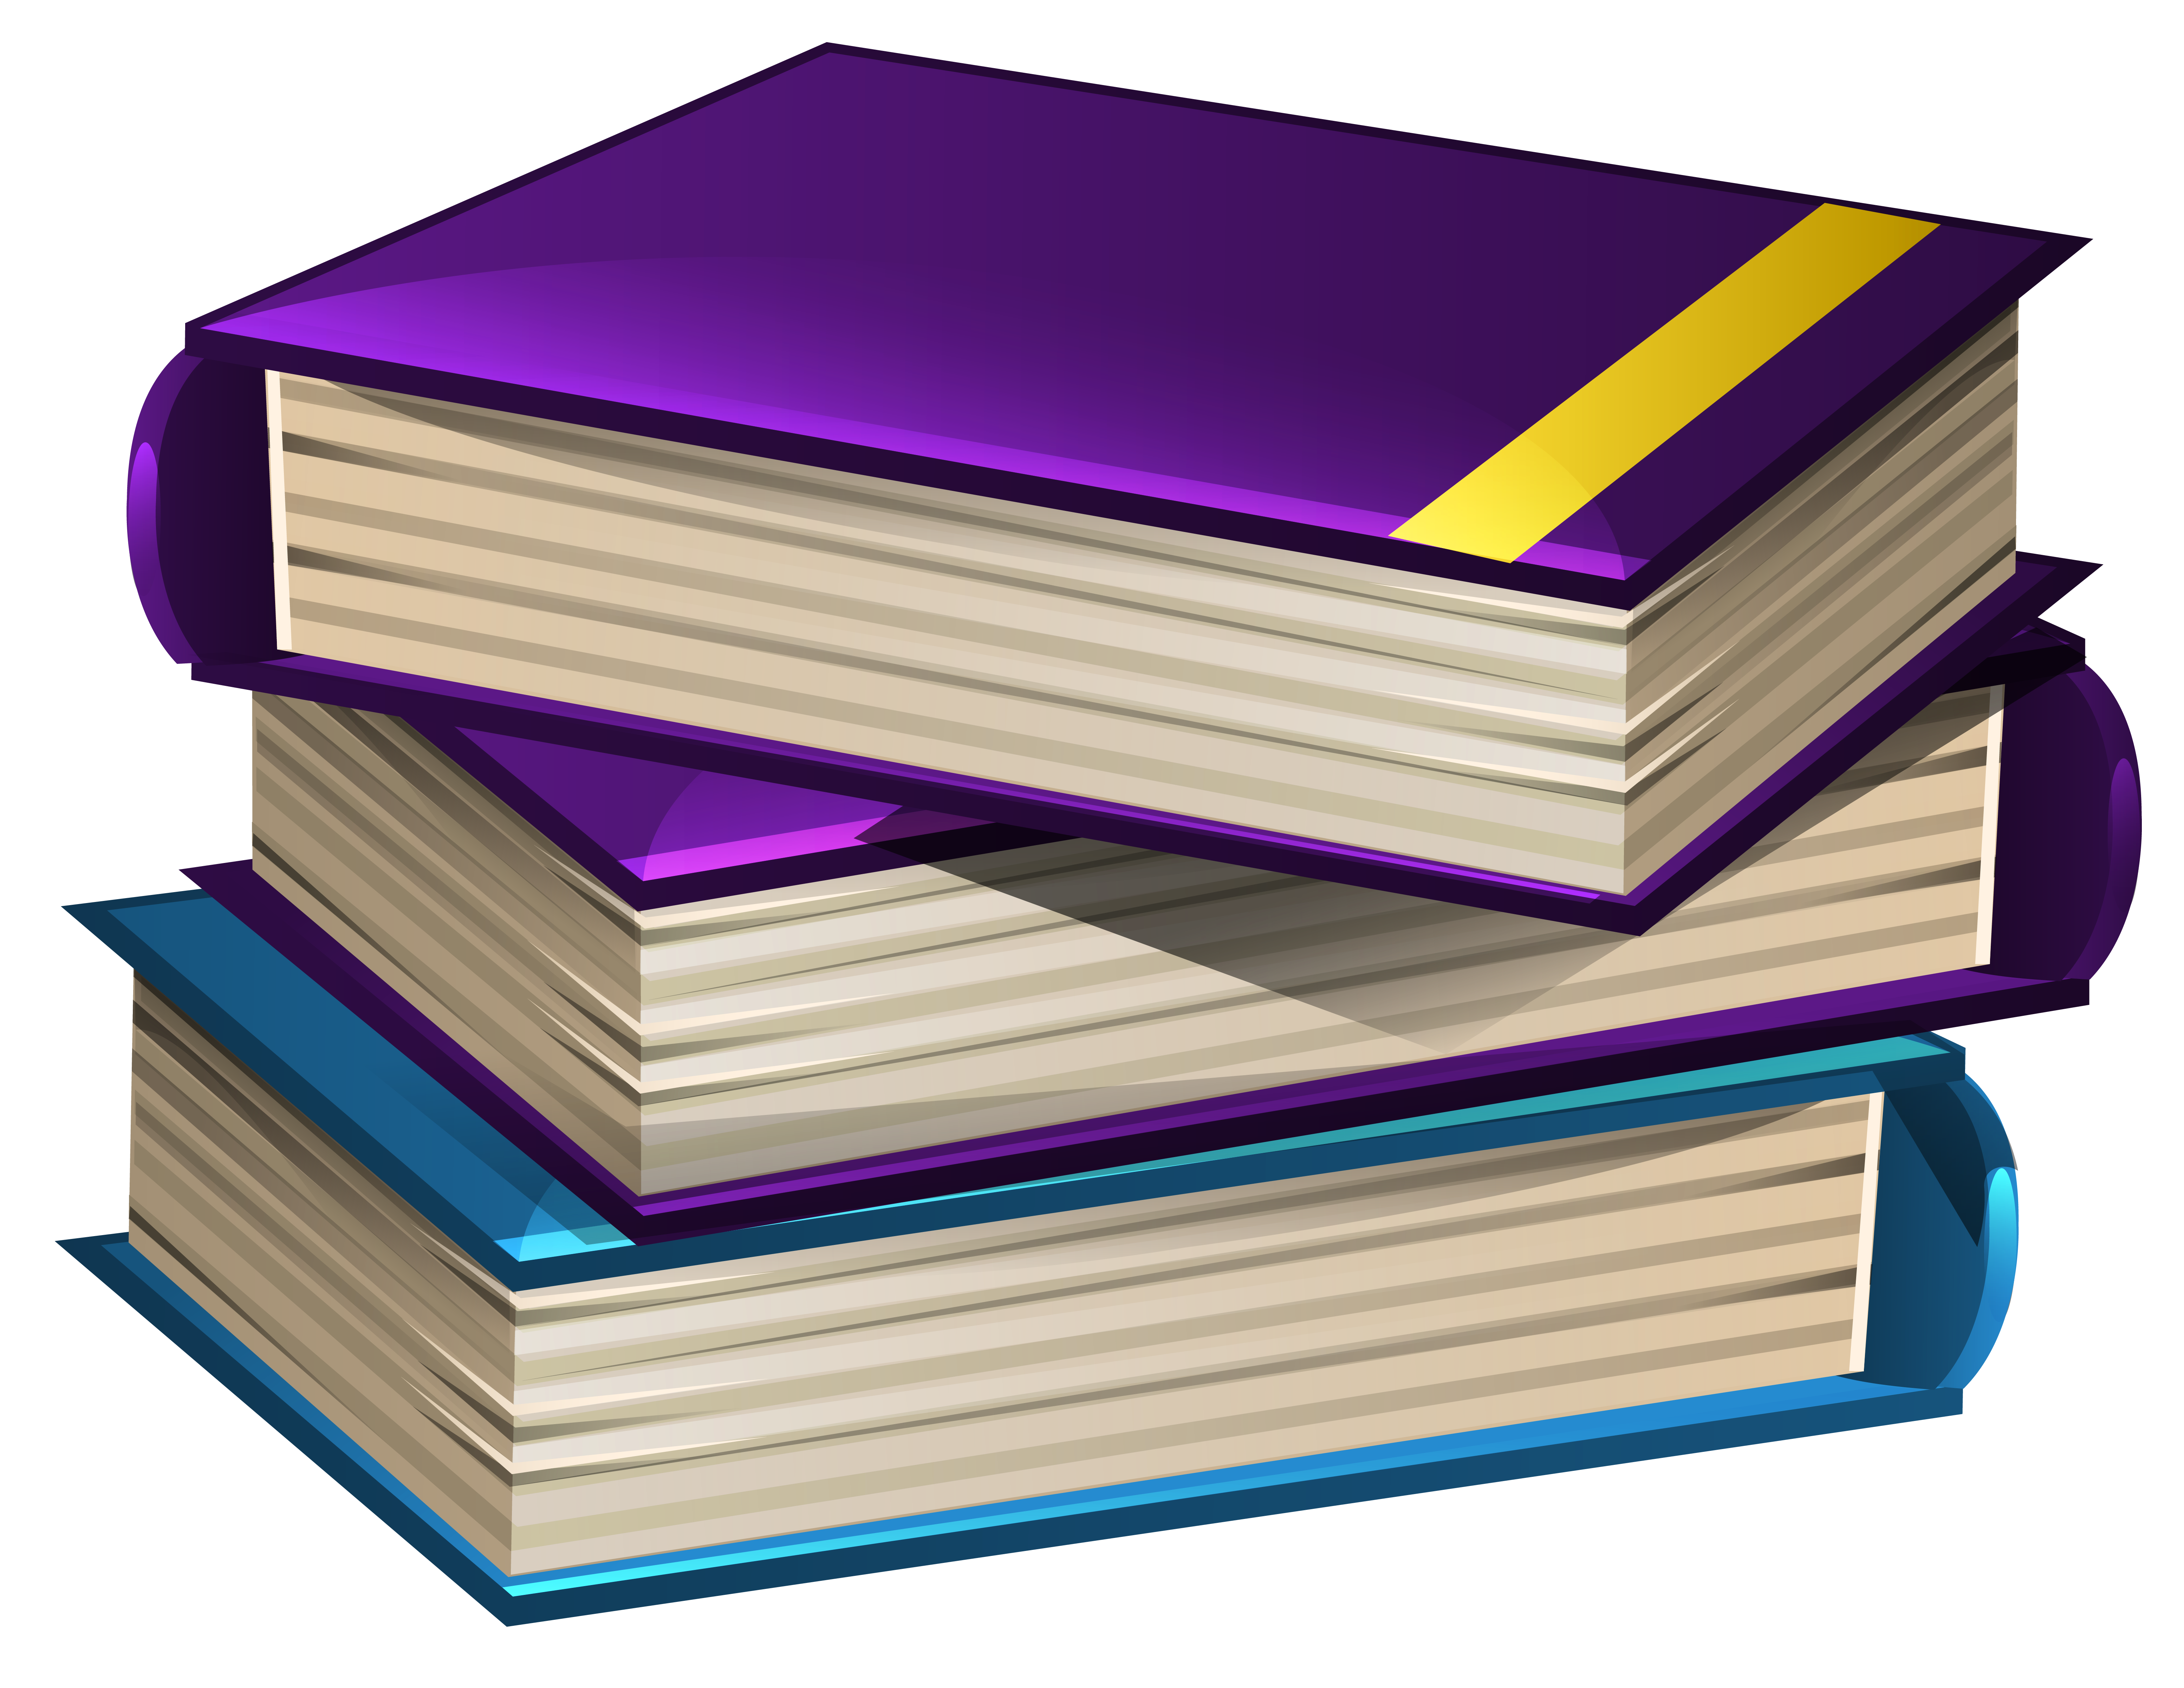 Covered clipart school book Full View  Gallery Books